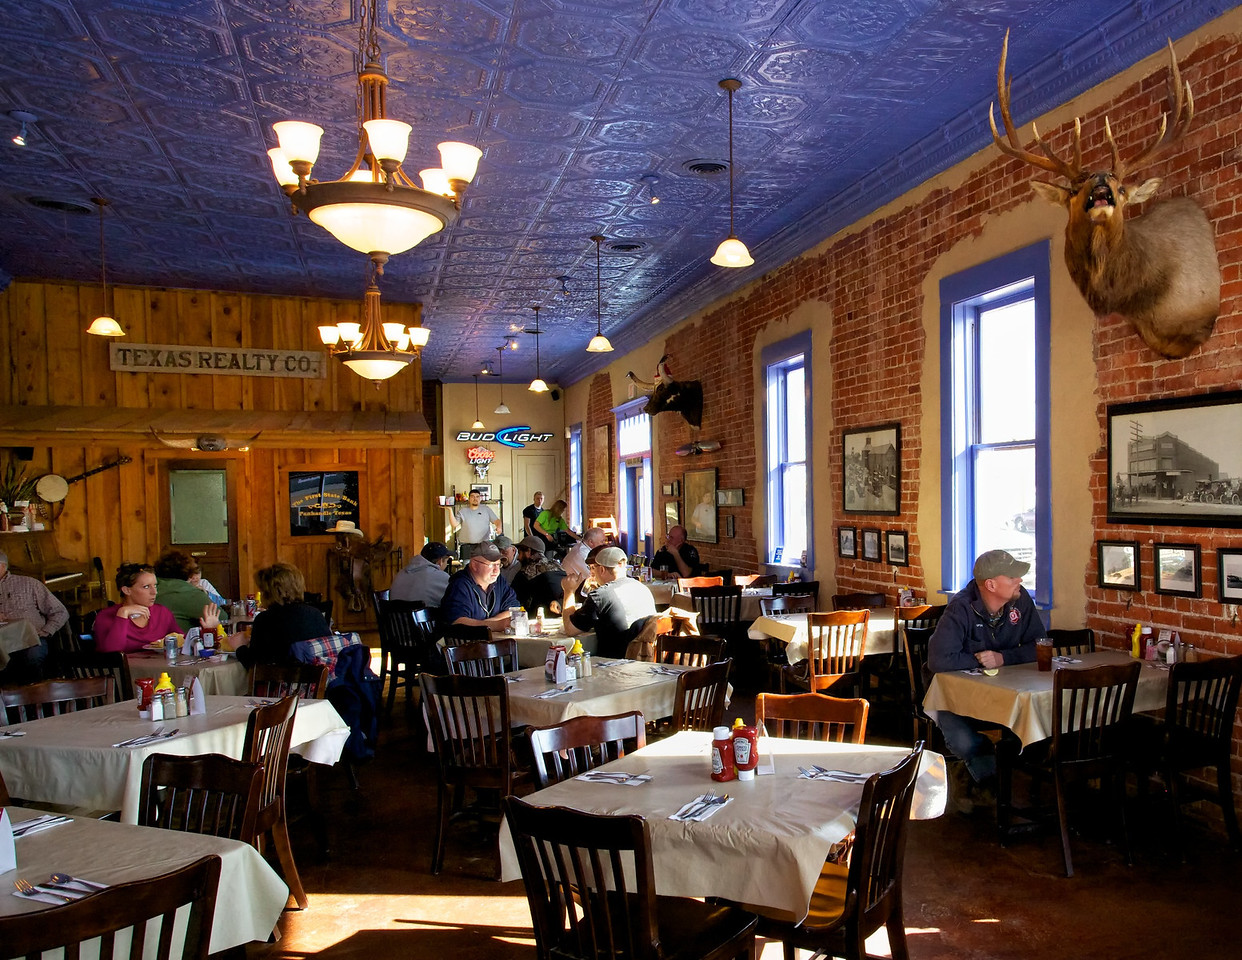 Lunch crowd at the Buffalo Grass Restaurant in Panhandle, Texas.